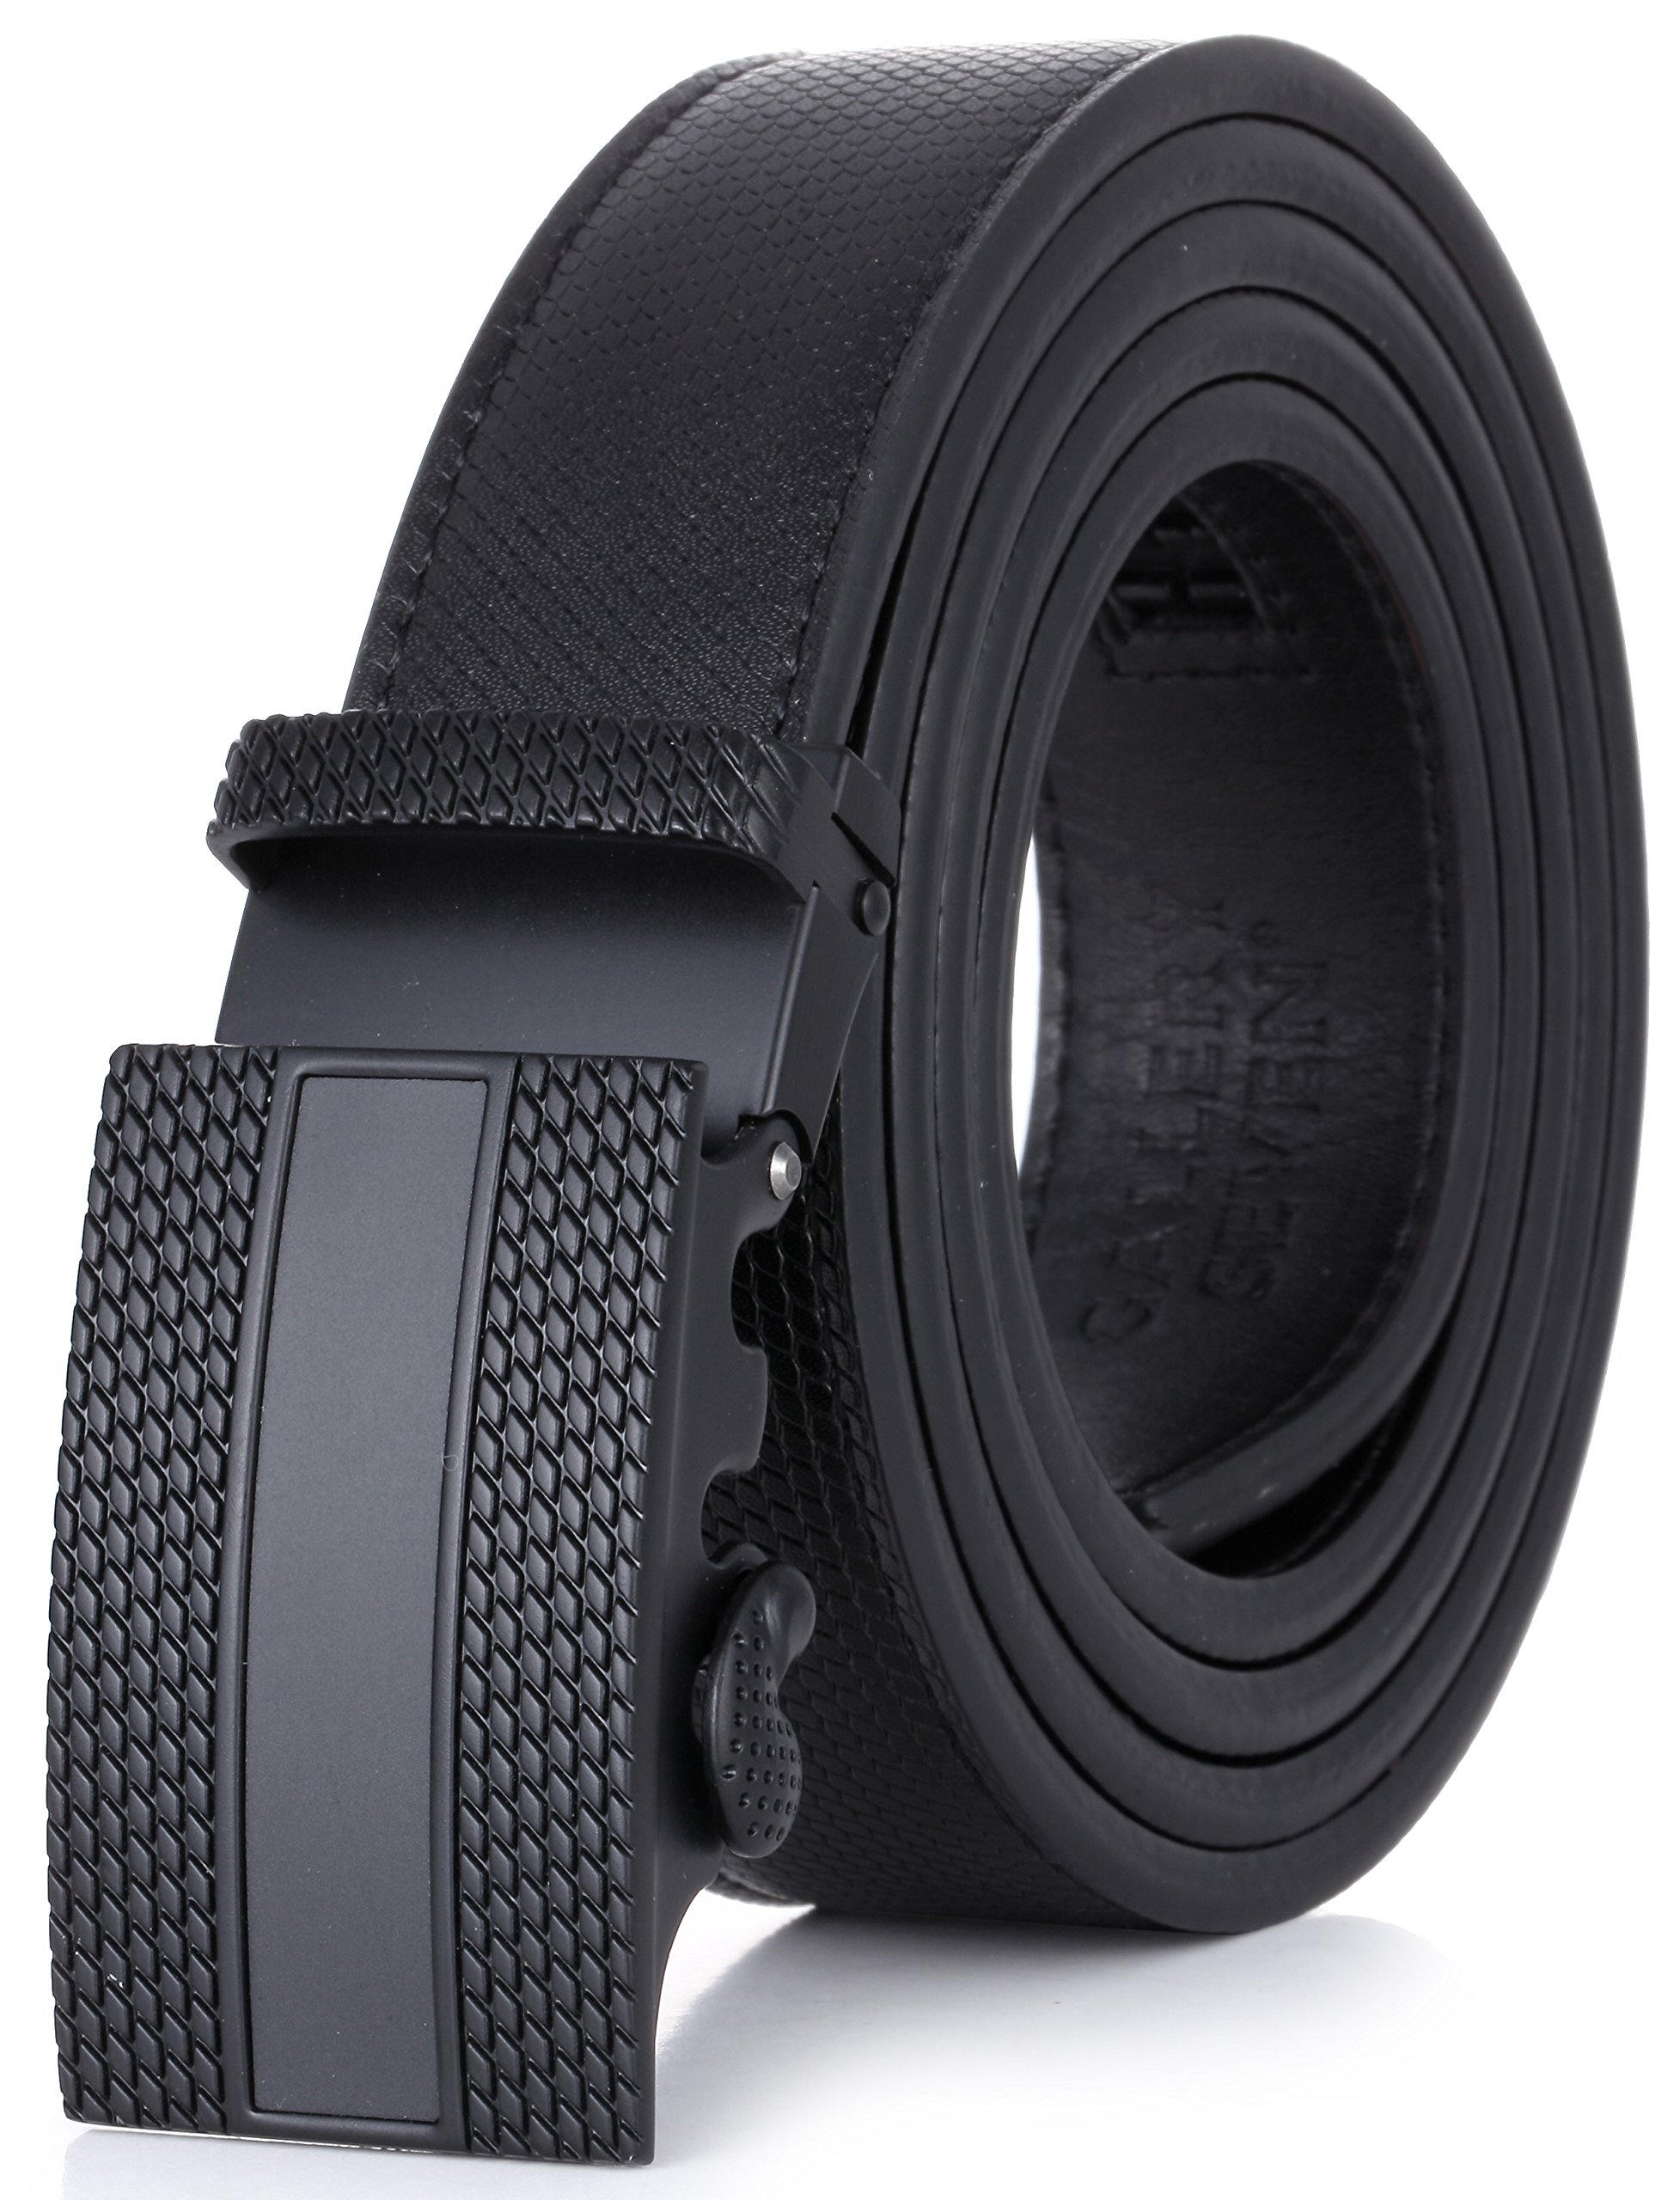 Gallery Seven Mens Leather Ratchet Belt - Adjustable Genuine Leather Dress Belt For Men - Casual Click Belt - In Gift Box - Black Style-1 - Medium Up To Waist 44''